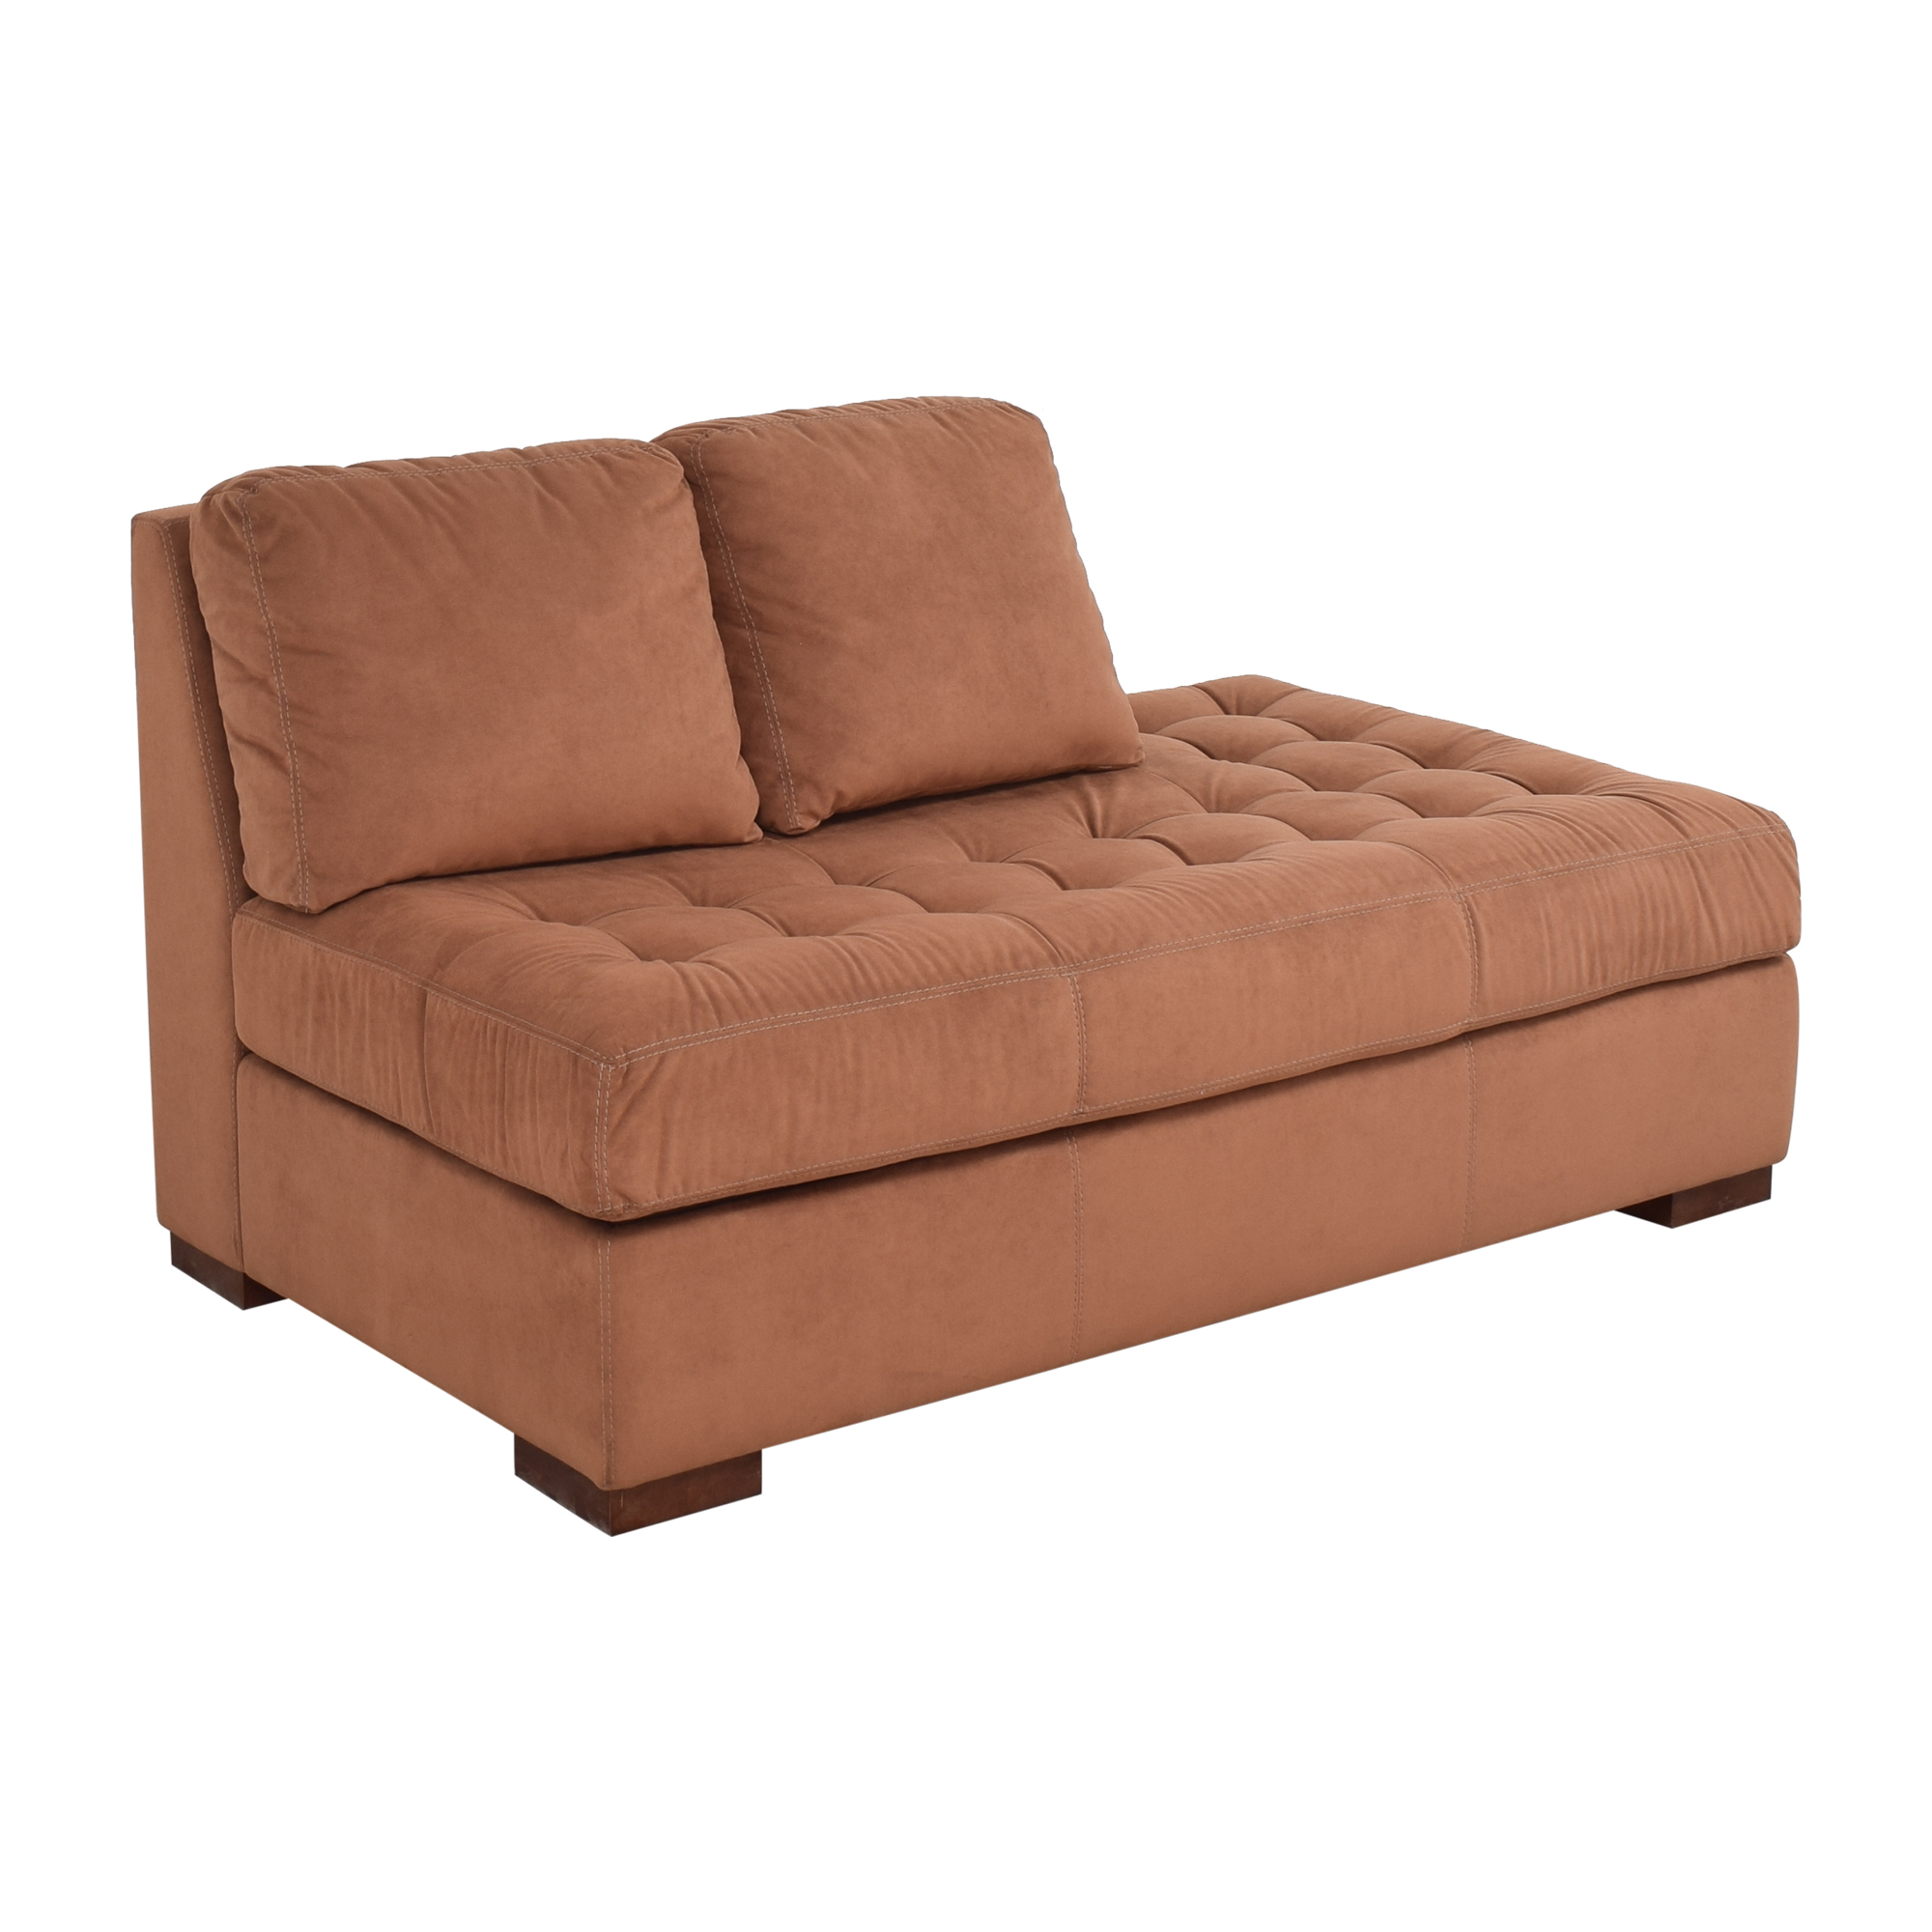 American Leather Tufted Storage Chaise / Sofas